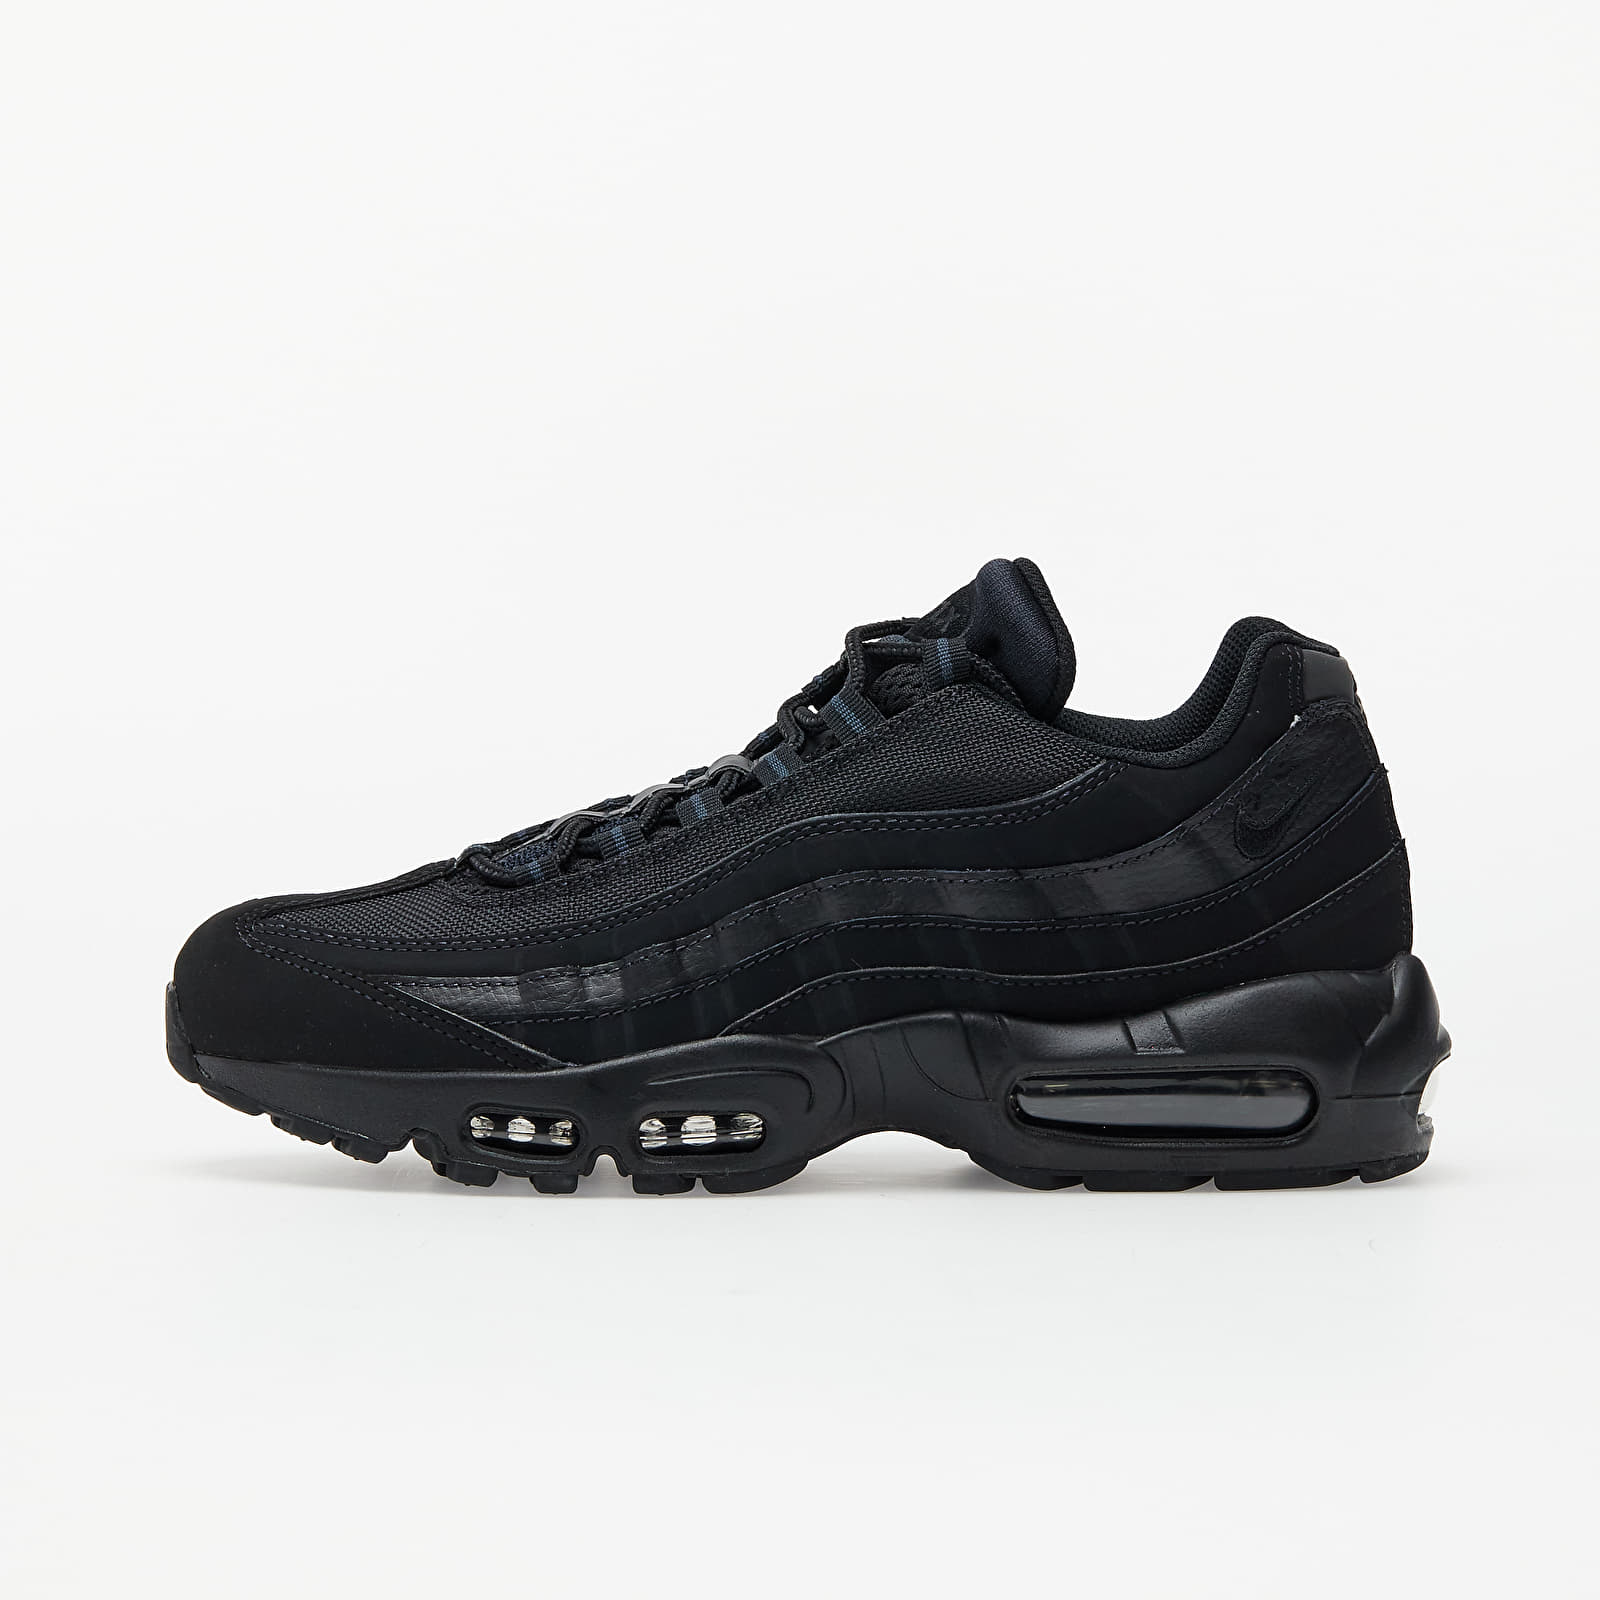 Ανδρικά παπούτσια Nike Air Max 95 Black/ Black-Anthracite